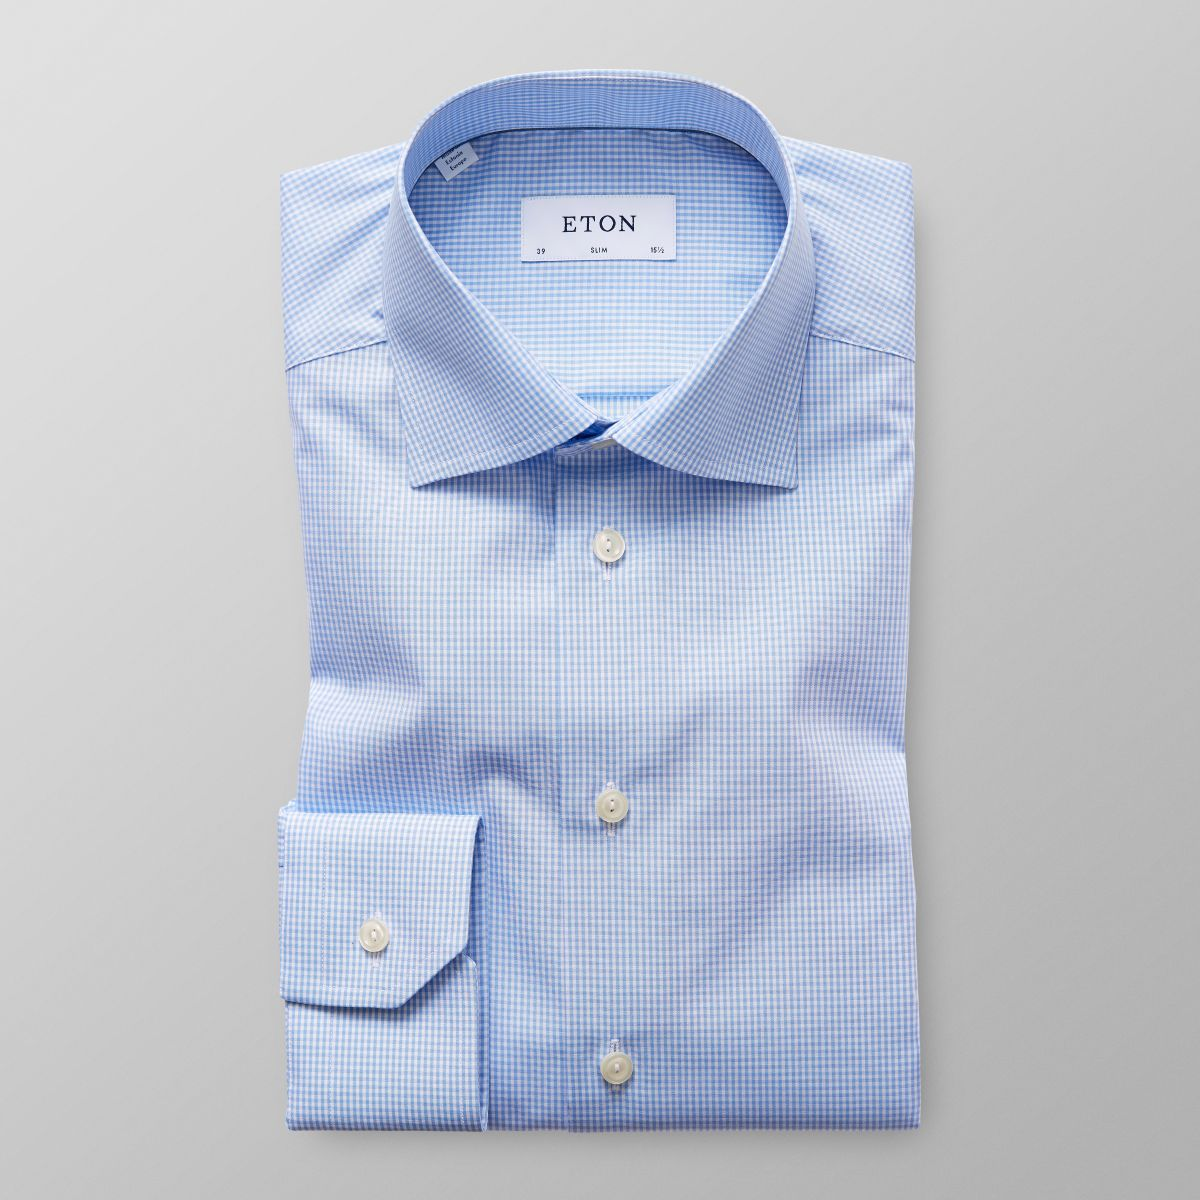 Online Cheap Price 100% Authentic Sale Online Slim fit Blue Check Poplin Shirt Eton OMiayyw453